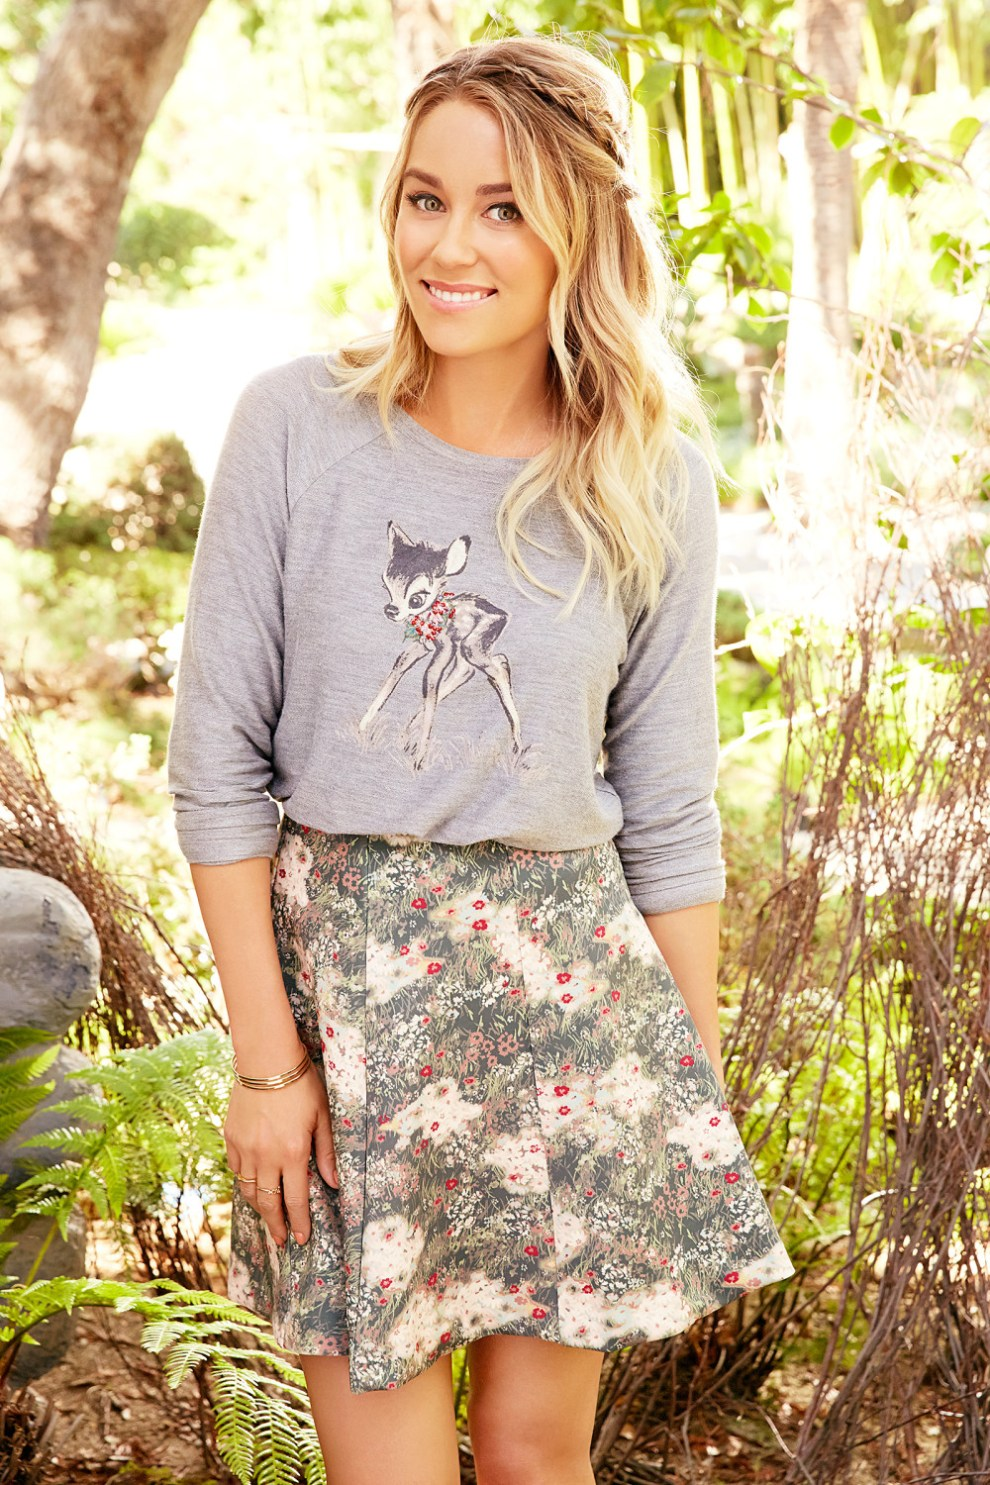 18b56c6b0 New Bambi Collection By Lauren Conrad Makes Appearance At Kohls